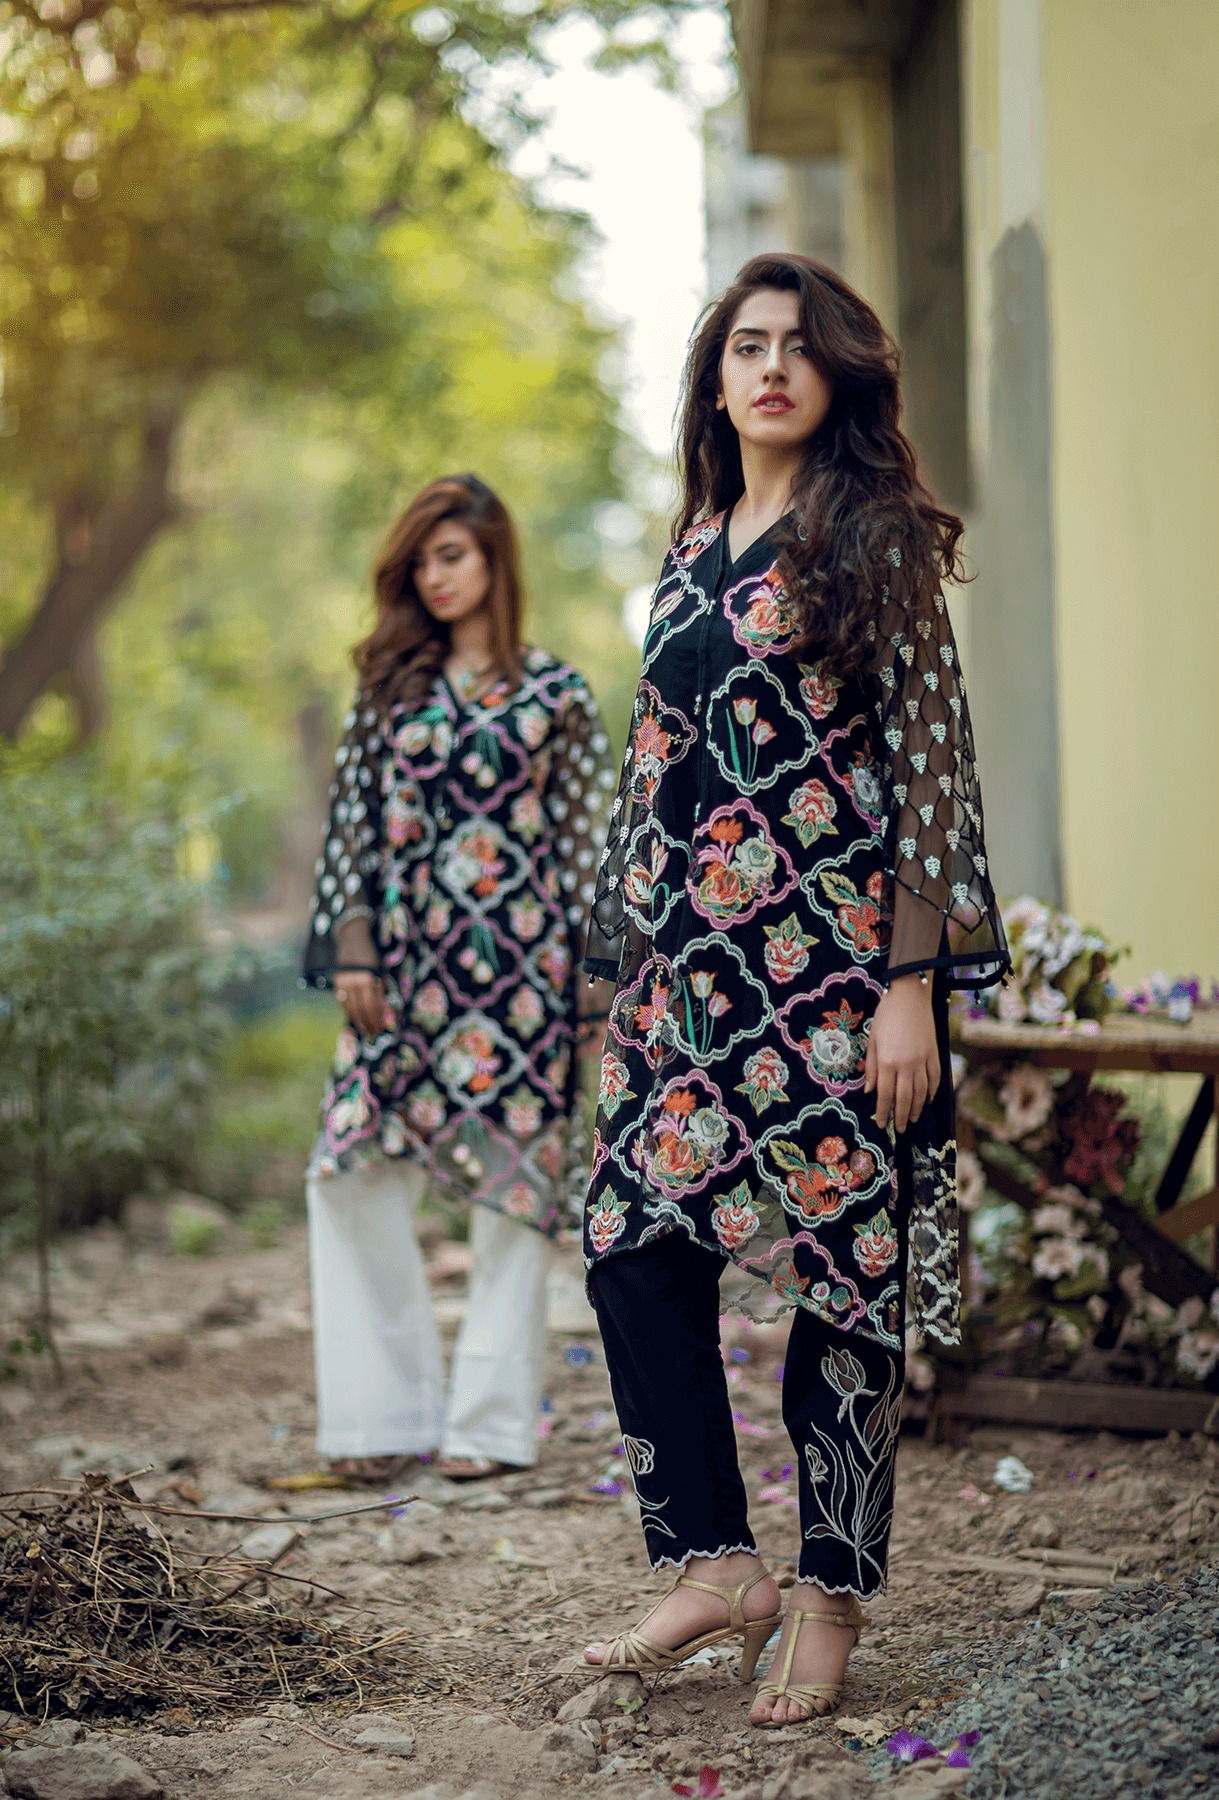 Cute Lahori Ink Semi Formal Eid Dresses Designs Collection 2017-18 (7)